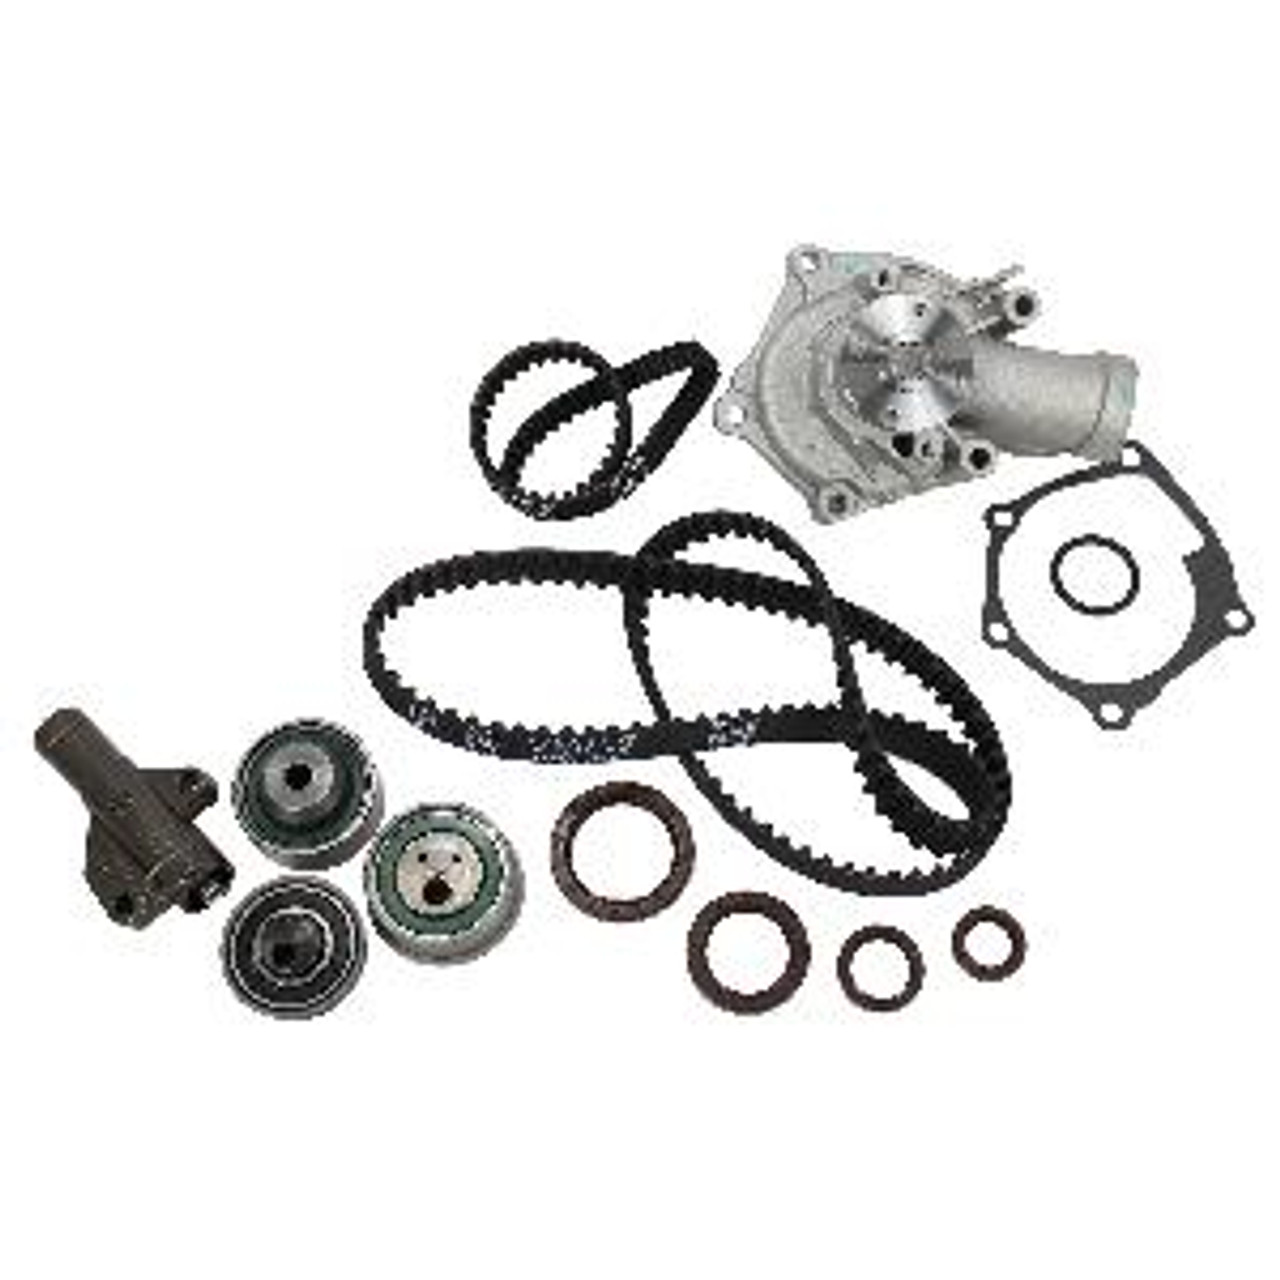 2008 Mitsubishi Eclipse 2.4L Engine Timing Belt Kit with